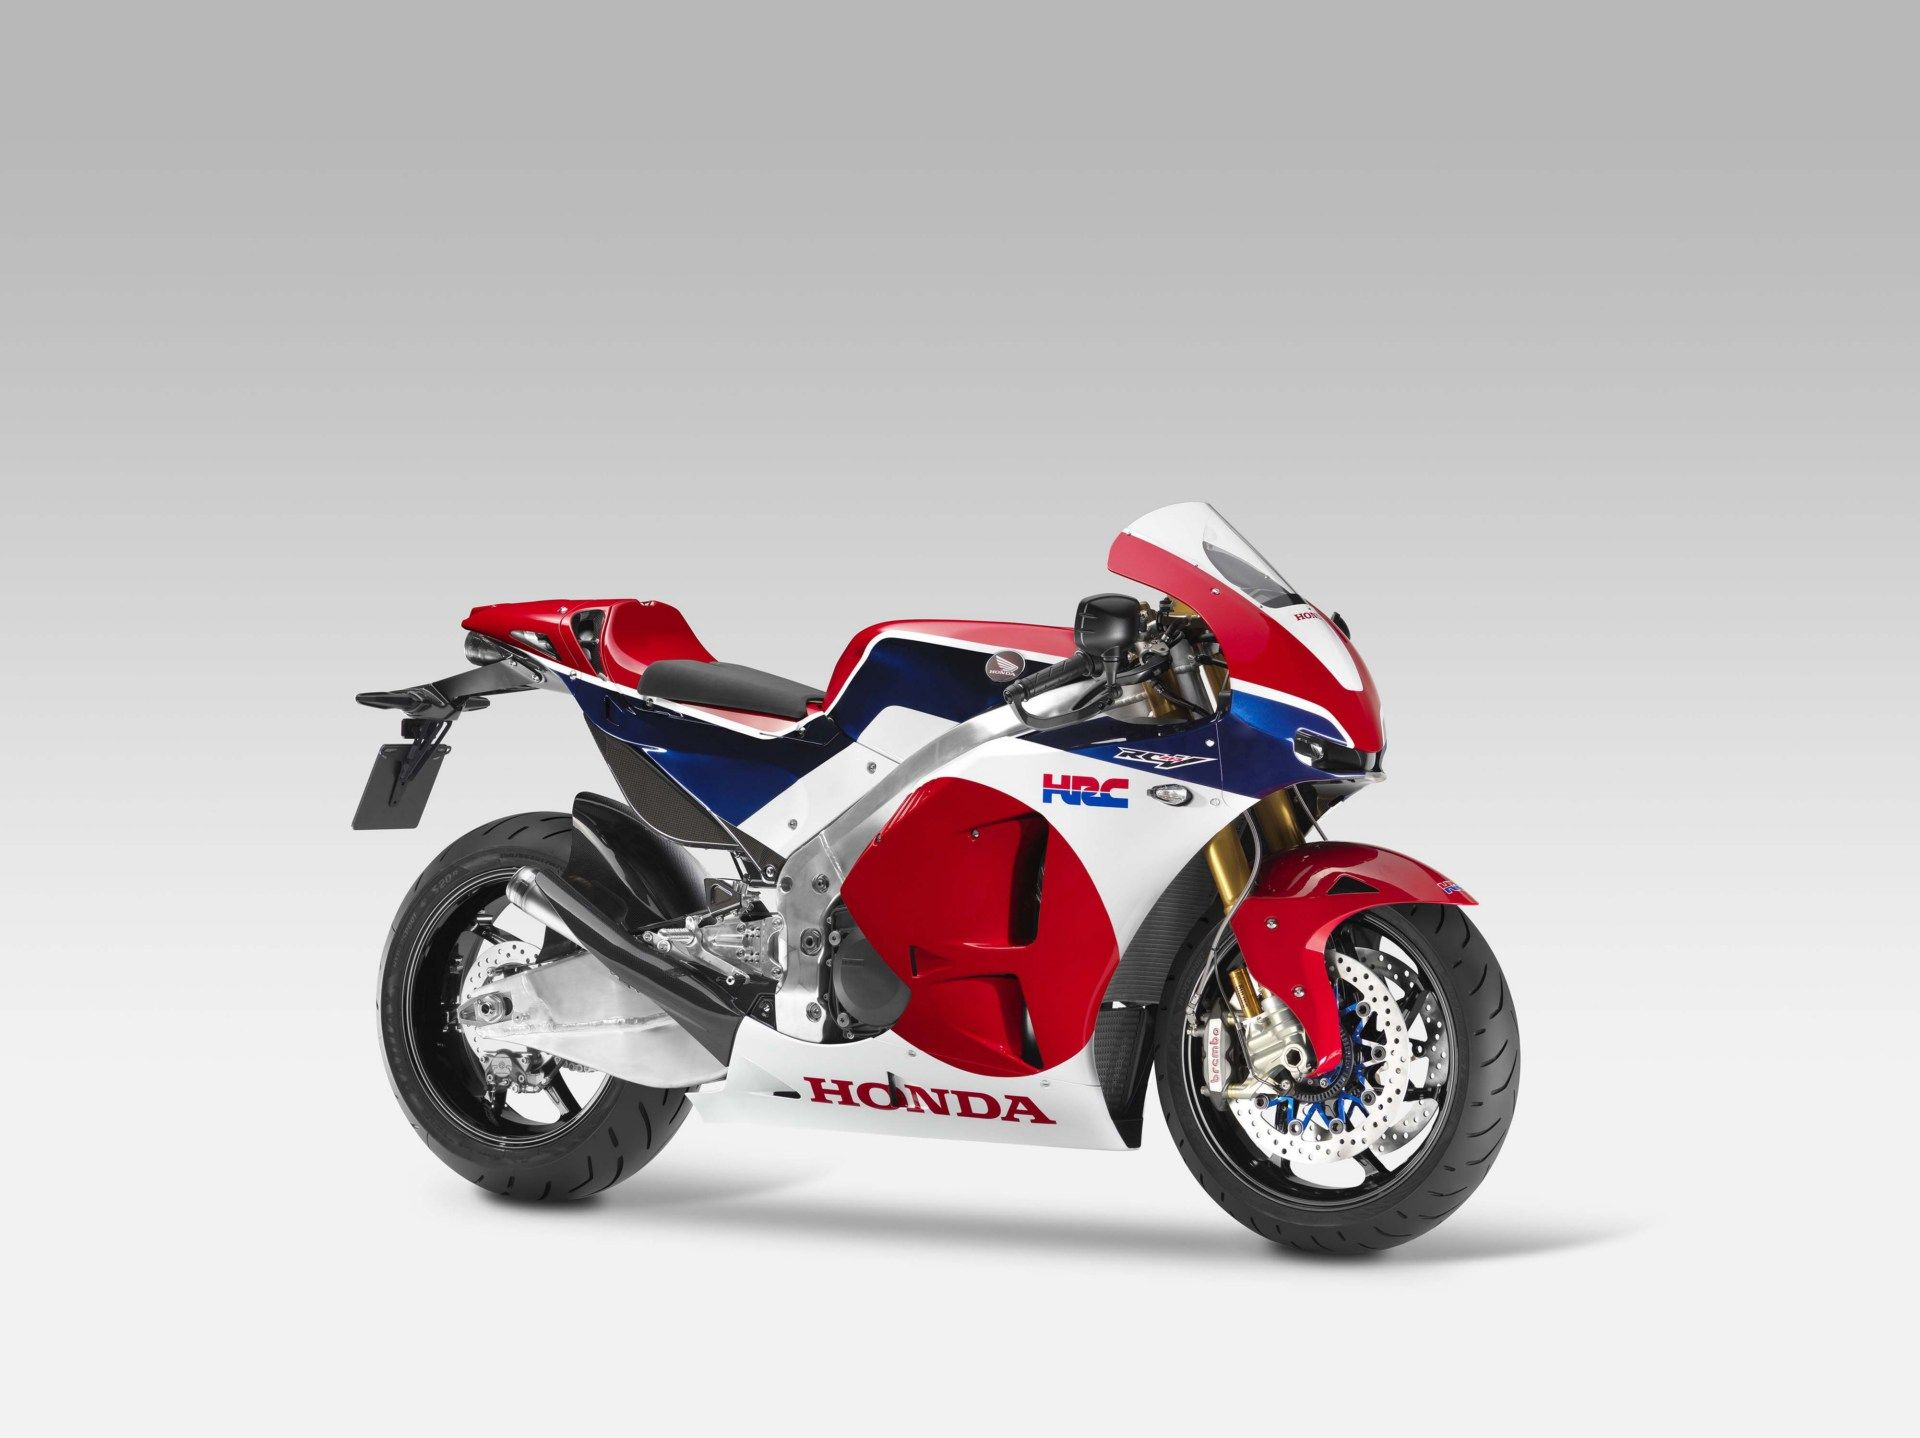 motogp-derived-honda-rc213v-s-is-street-legal-and-can-be-yours-for-170000-91266_1.jpg (1920×1438)